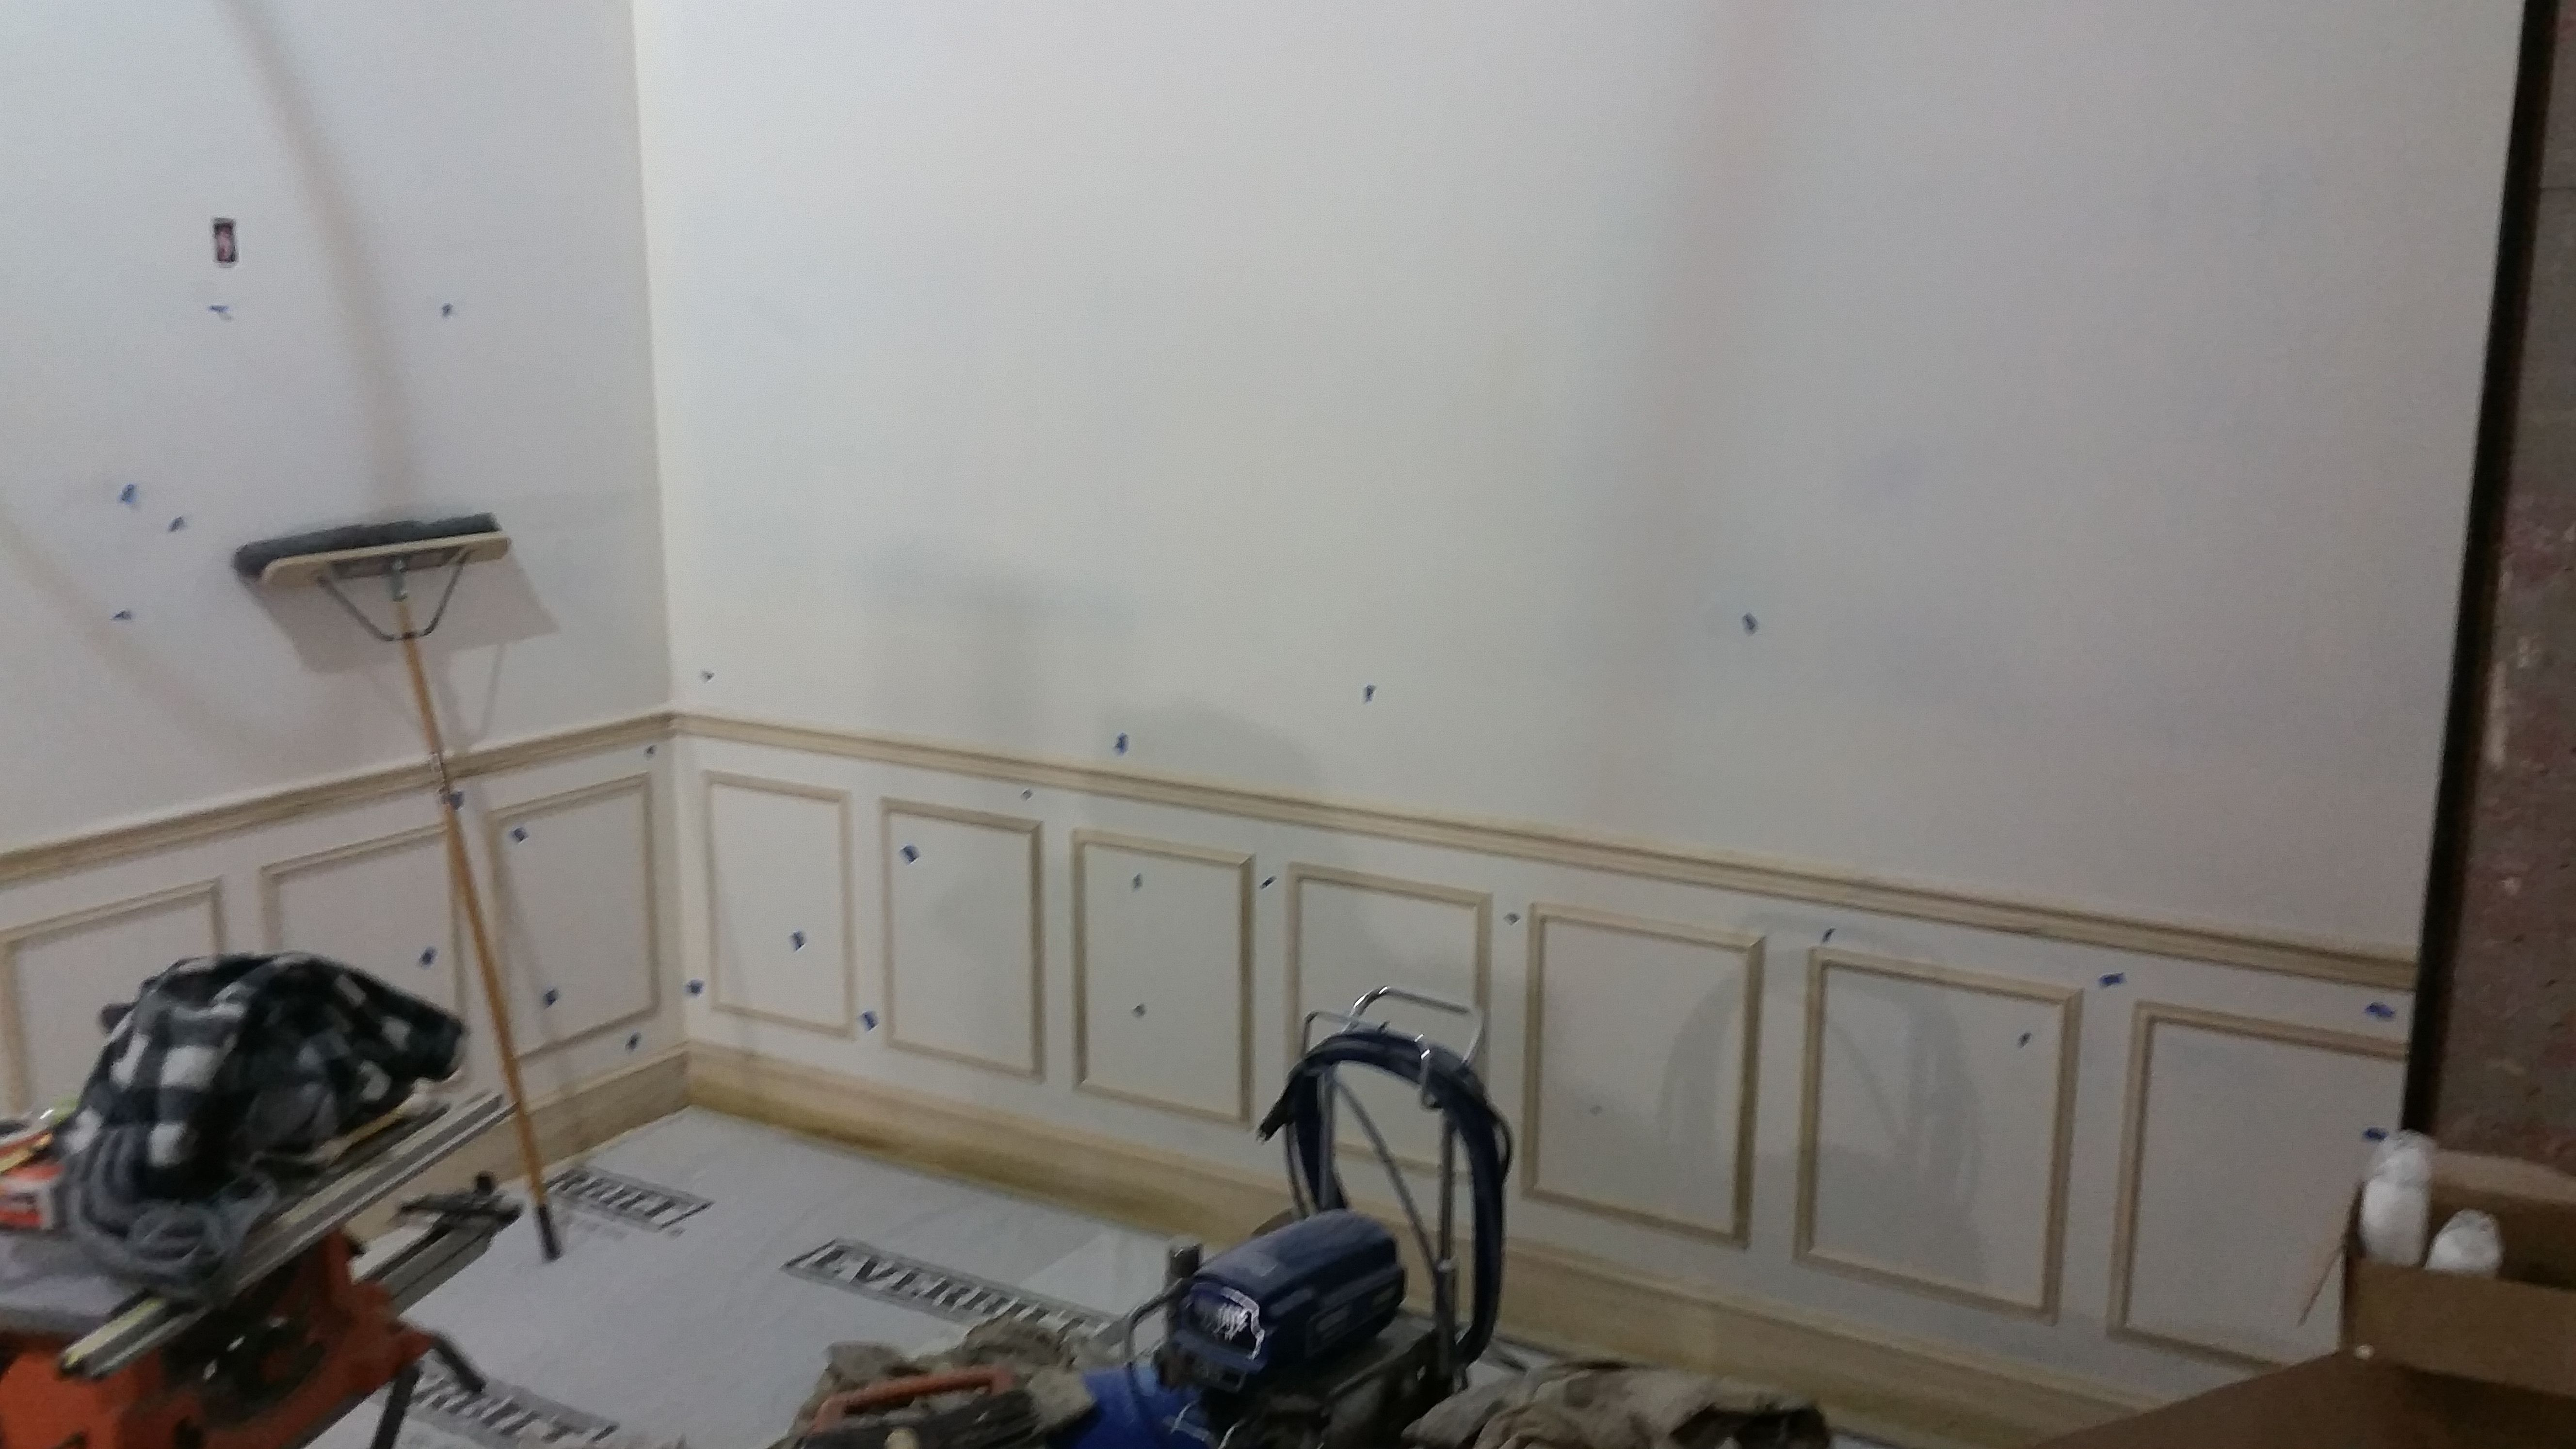 When using a high gloss paint on walls, trims, paneling